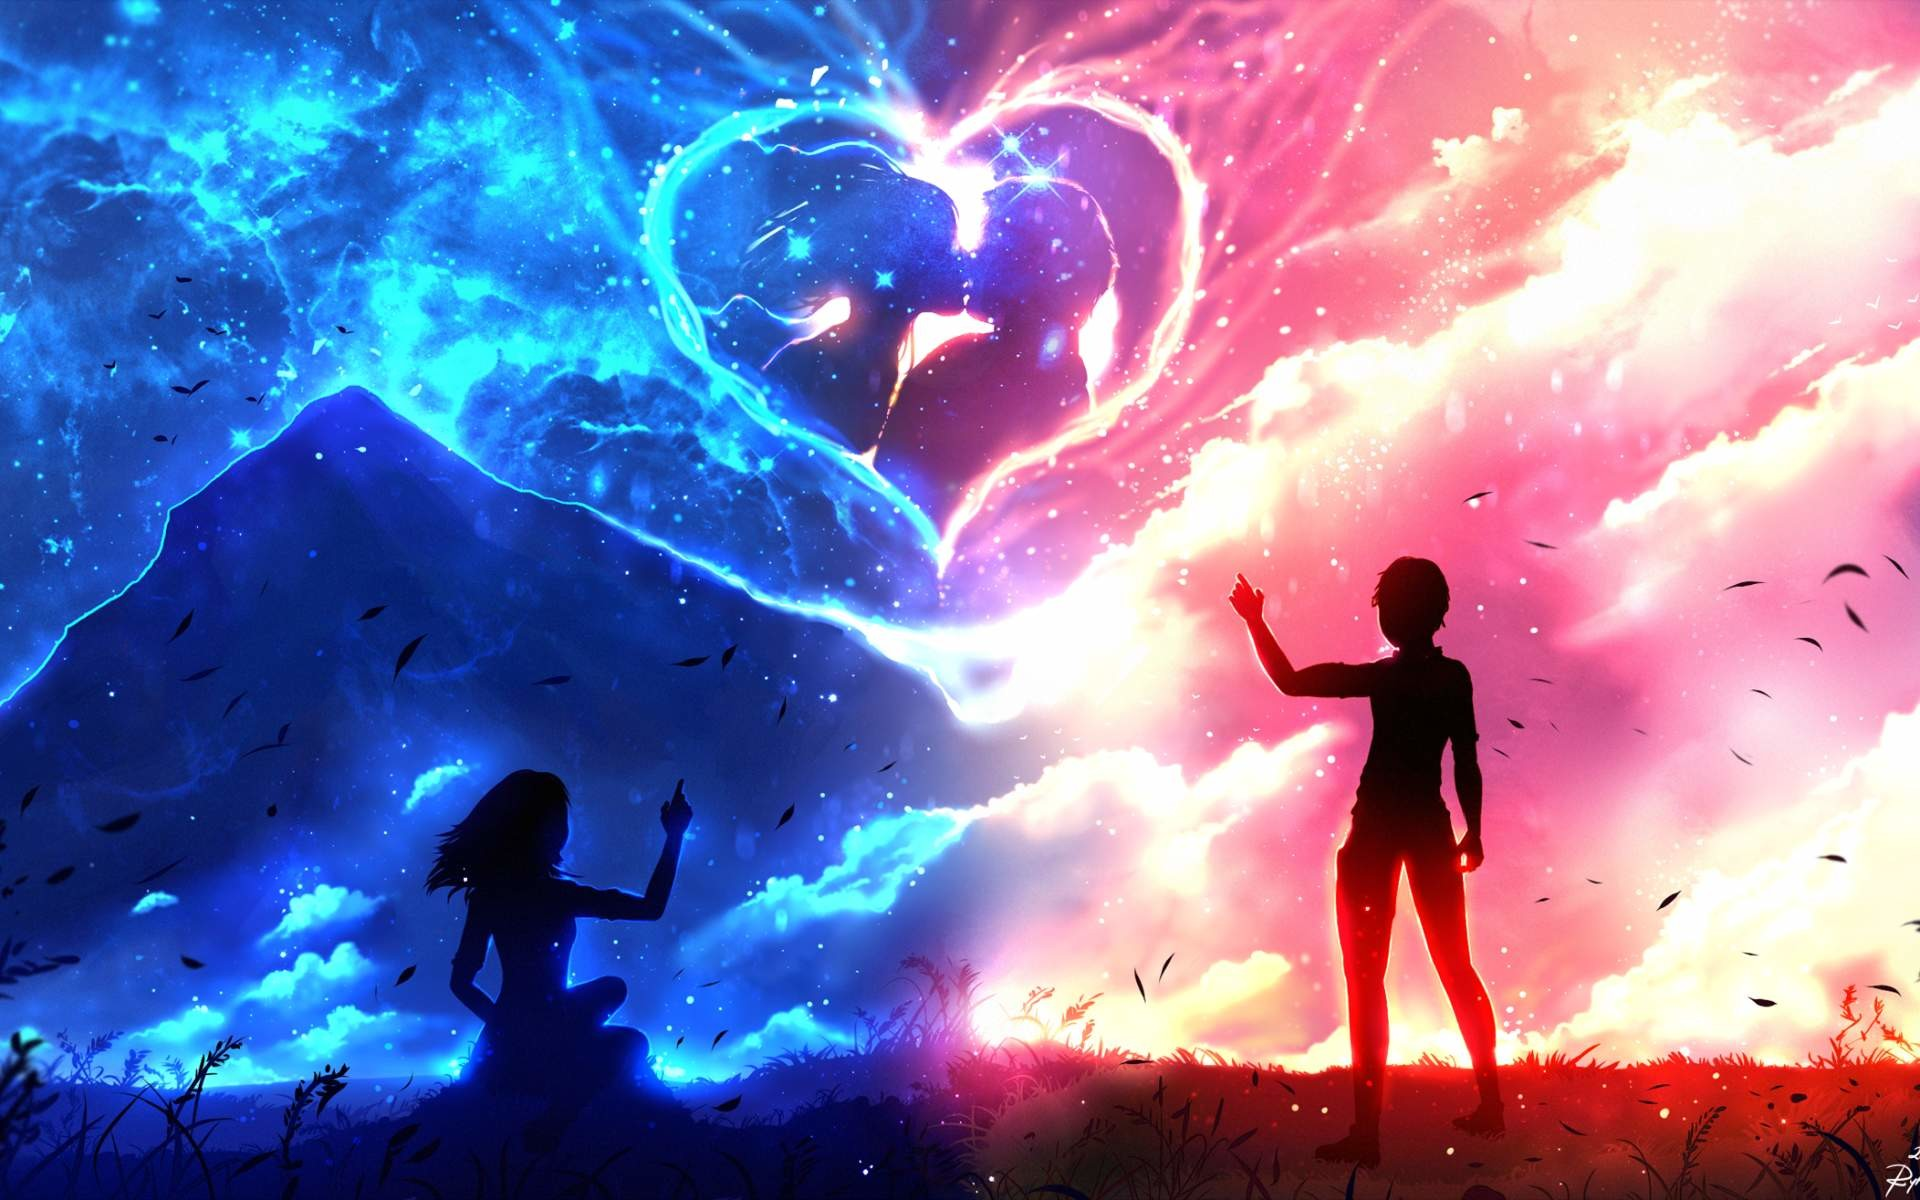 Love couple Wallpaper Animated : Romantic Anime Wallpapers (64+ images)